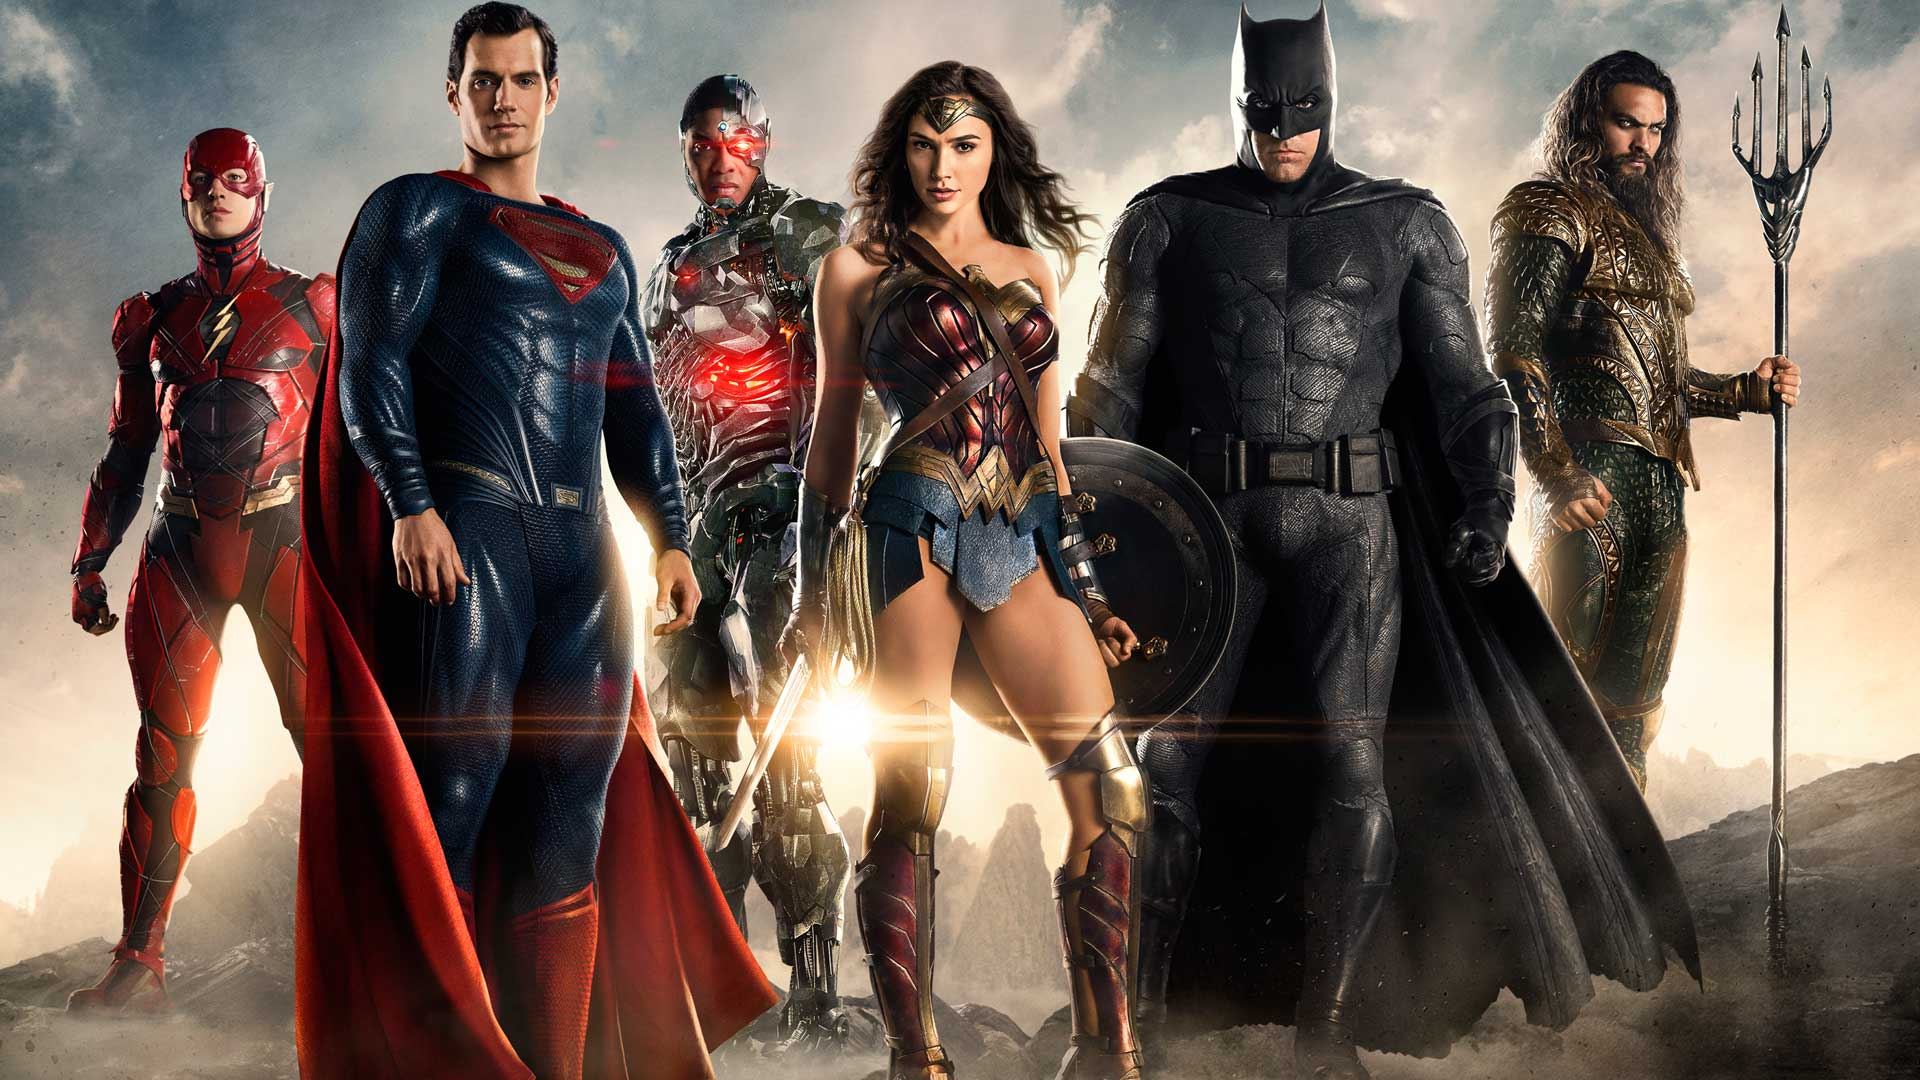 Every DC comic book movie currently in the works